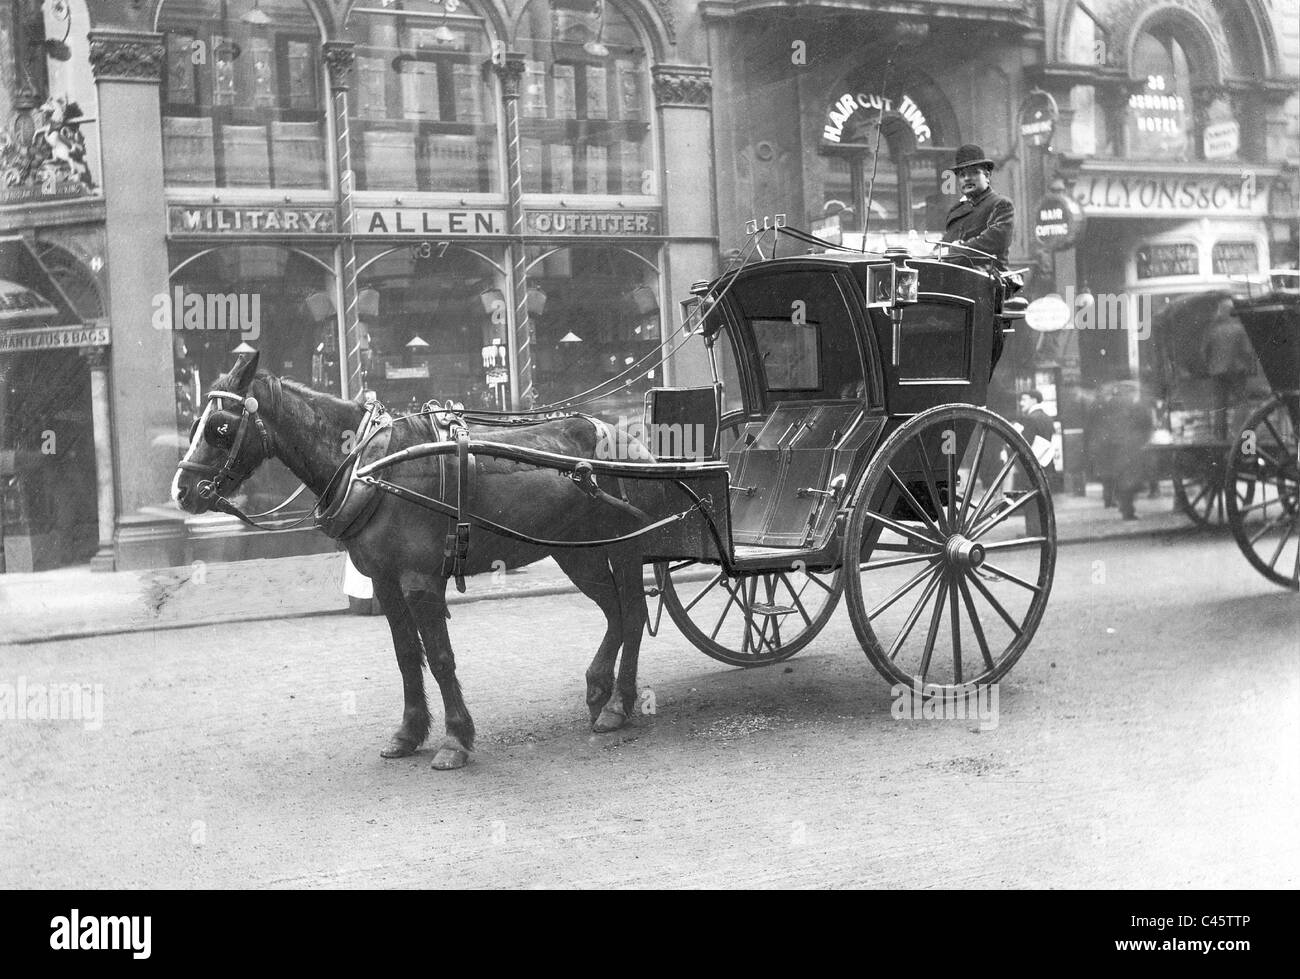 Hackney carriage in London, 1904 - Stock Image